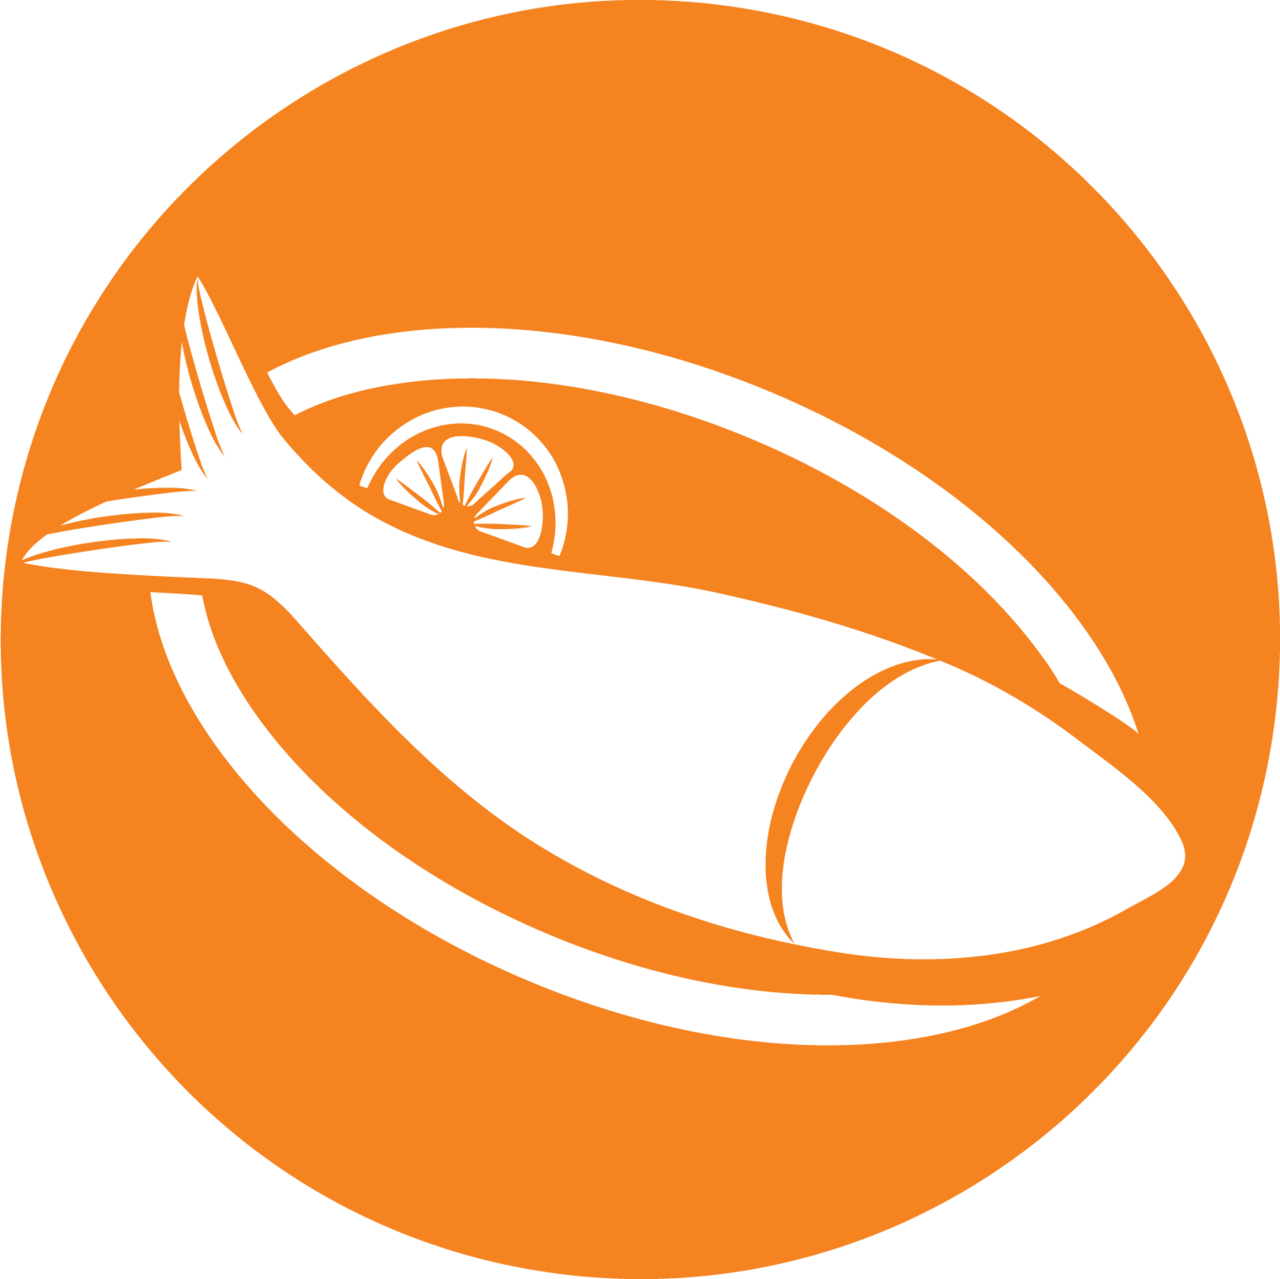 Small icon of fish on plate (with lemon) for sustainable seafood.